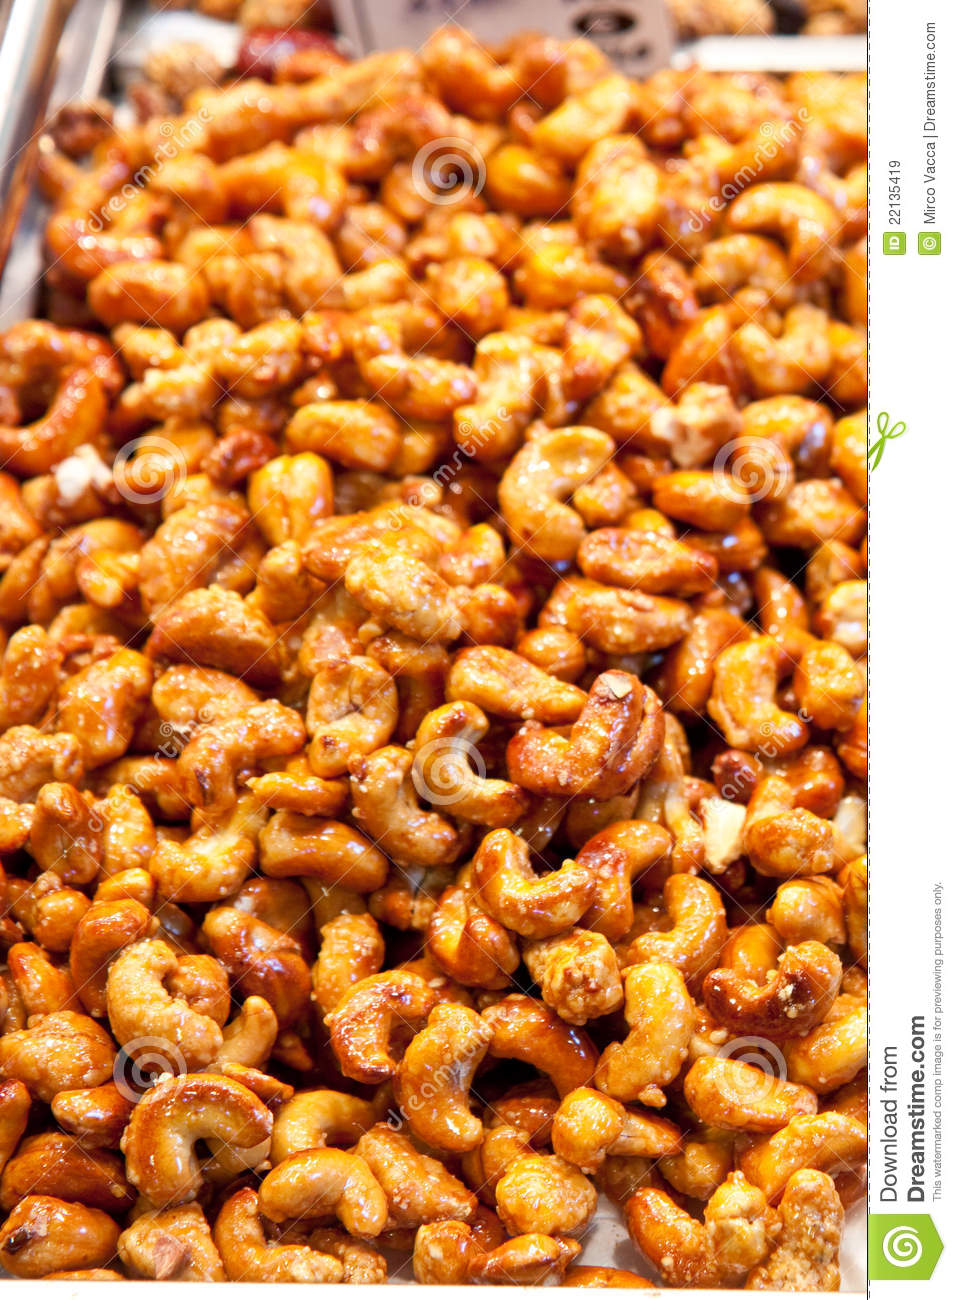 The market for cashew nuts in